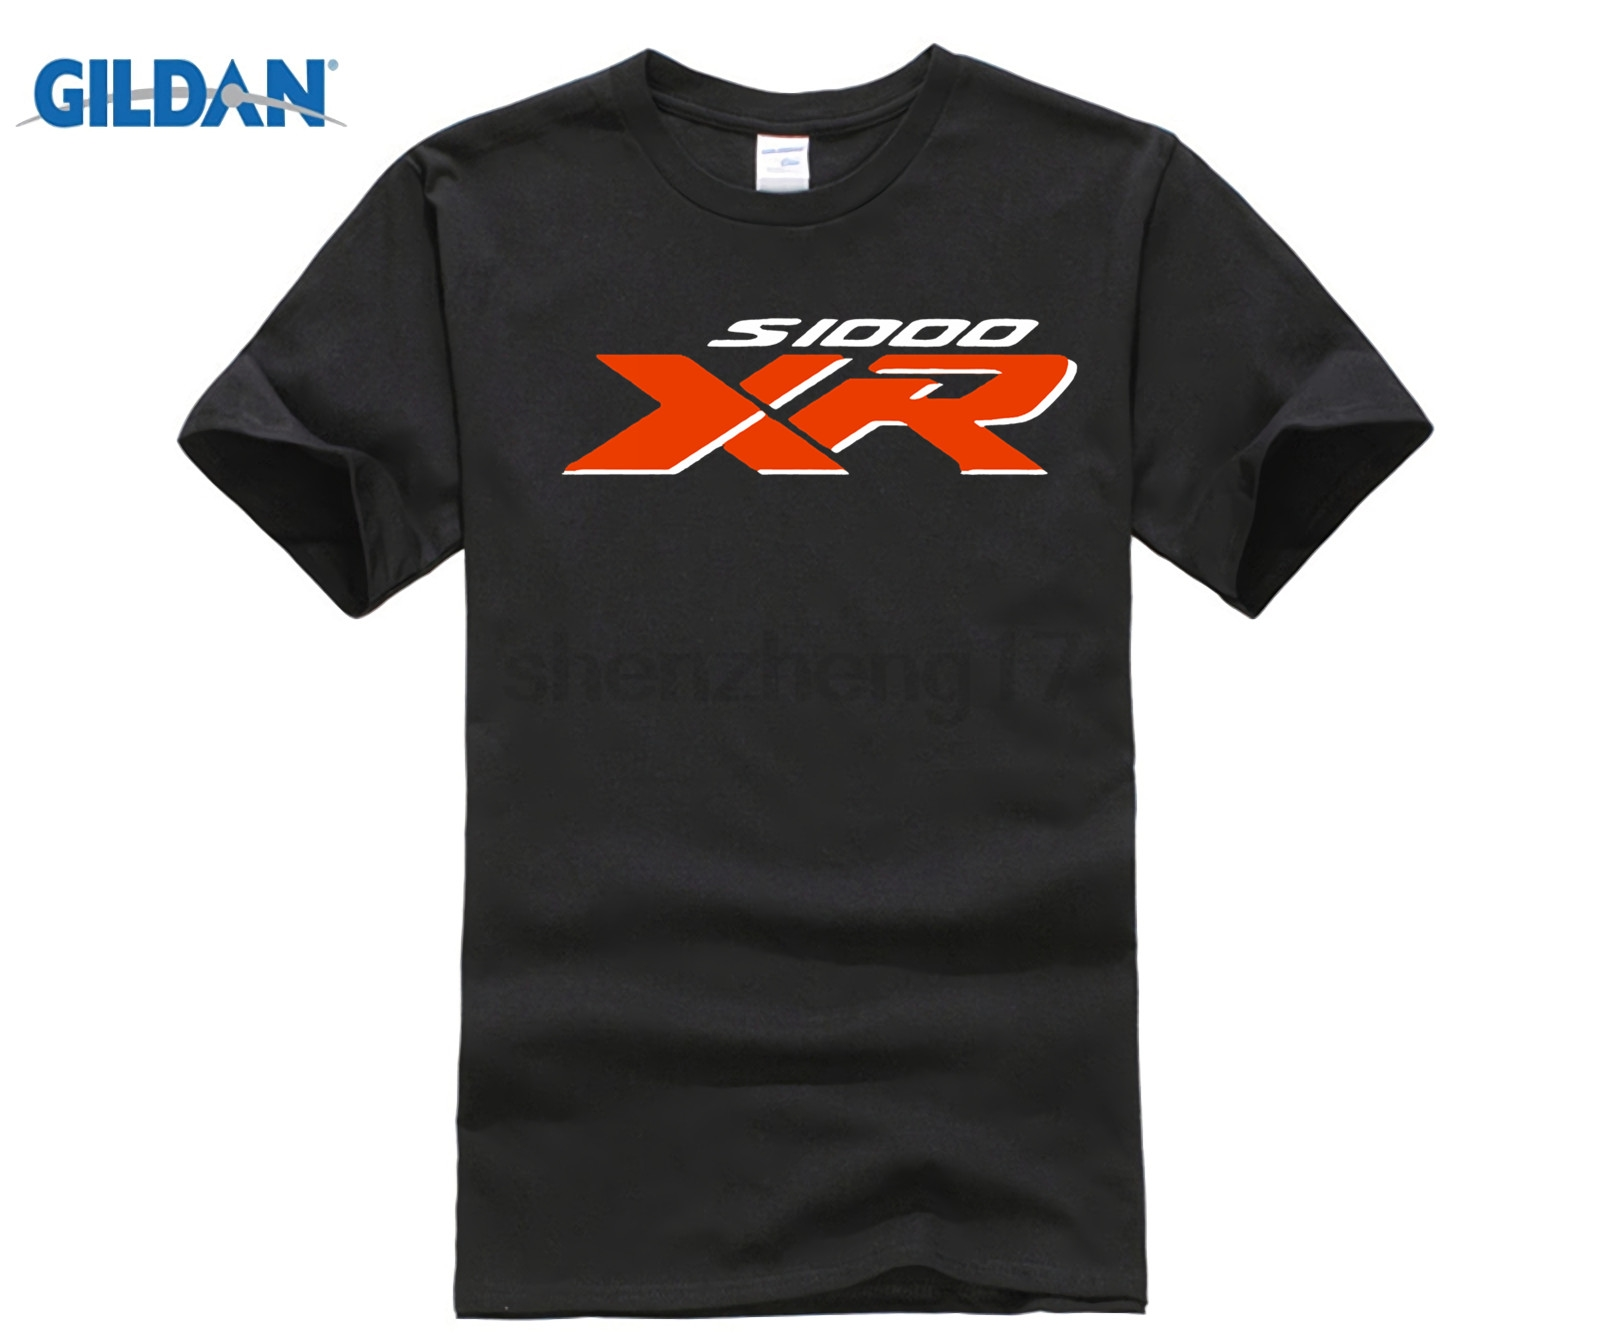 HOT Deals 2019 New T Shirts Unisex Funny Tops Tee Basic Models S1000Xr T-Shirt For Fans Motorcycles Shirt S 1000 Xr Personality image